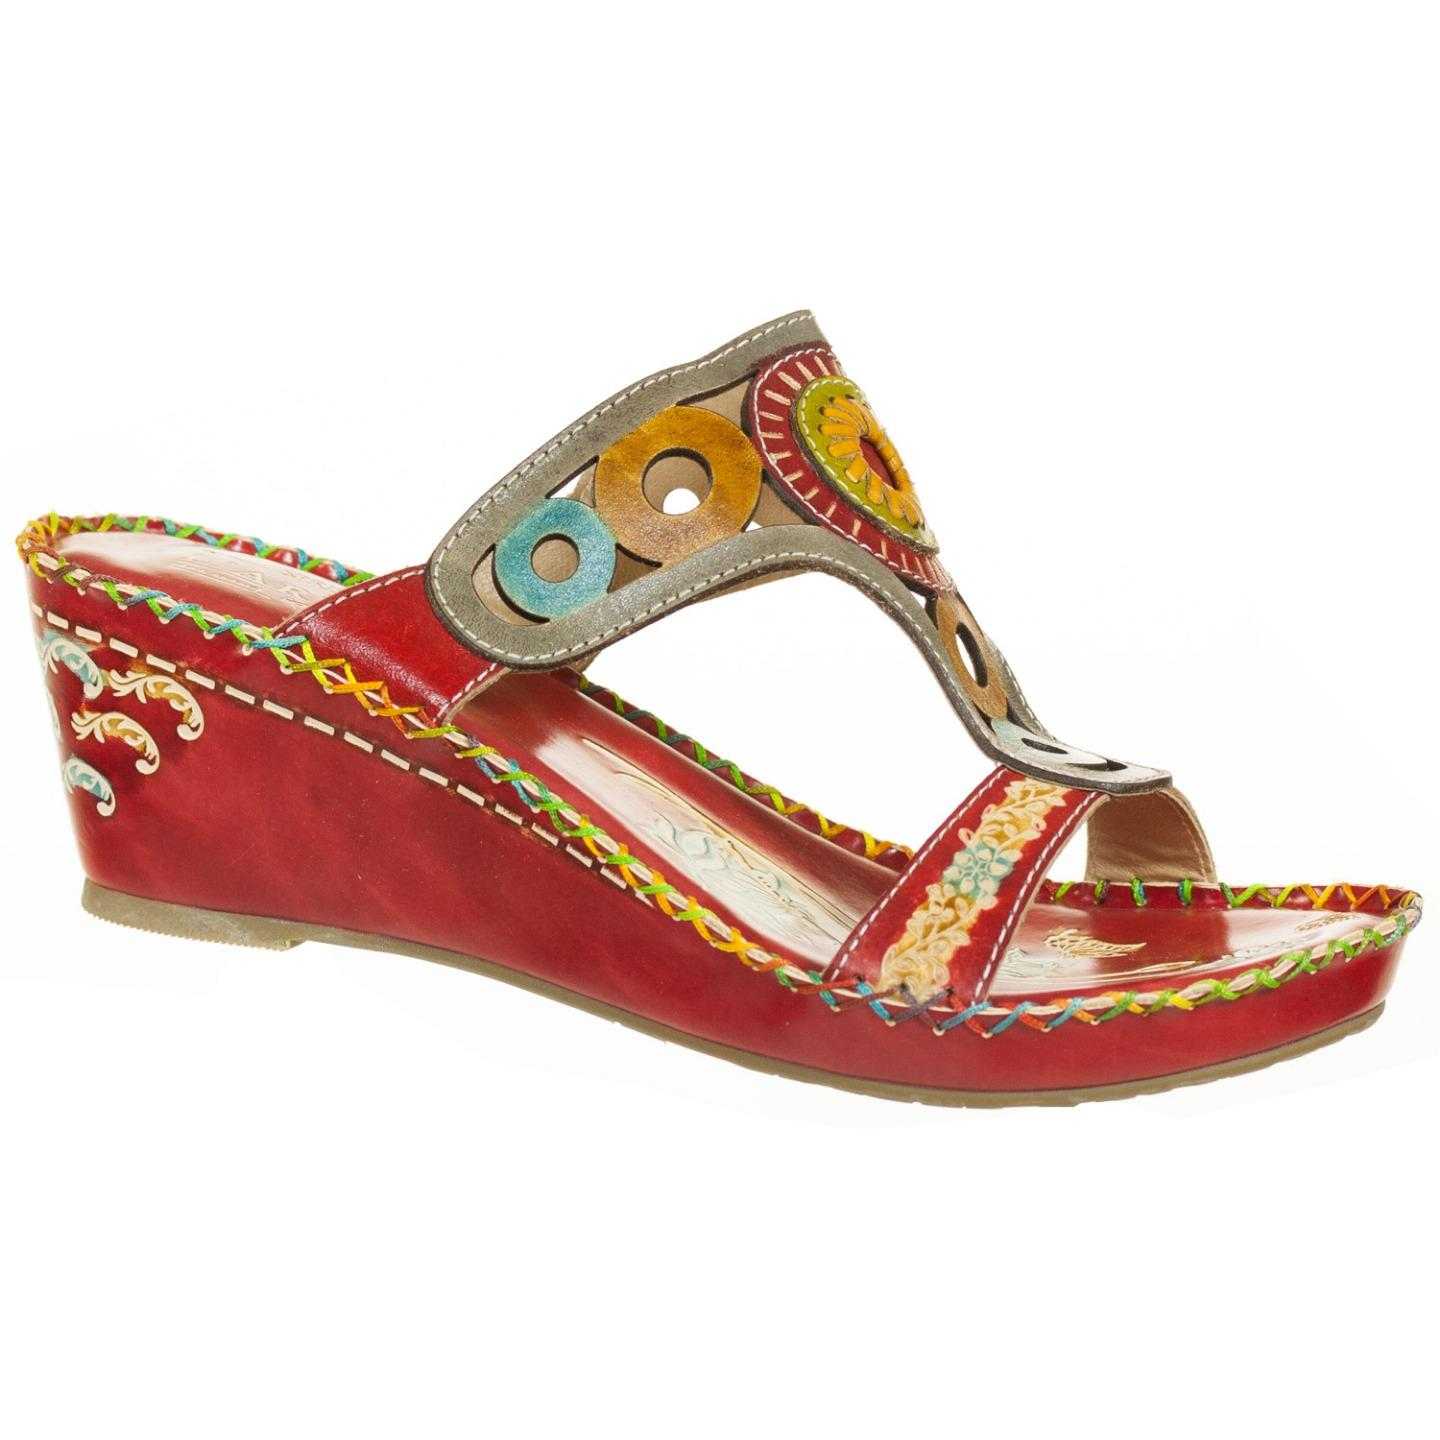 L'Artiste Collection By Spring Step Women's Aztec Sandal Red Multi EU 37 US 7 by Spring Step